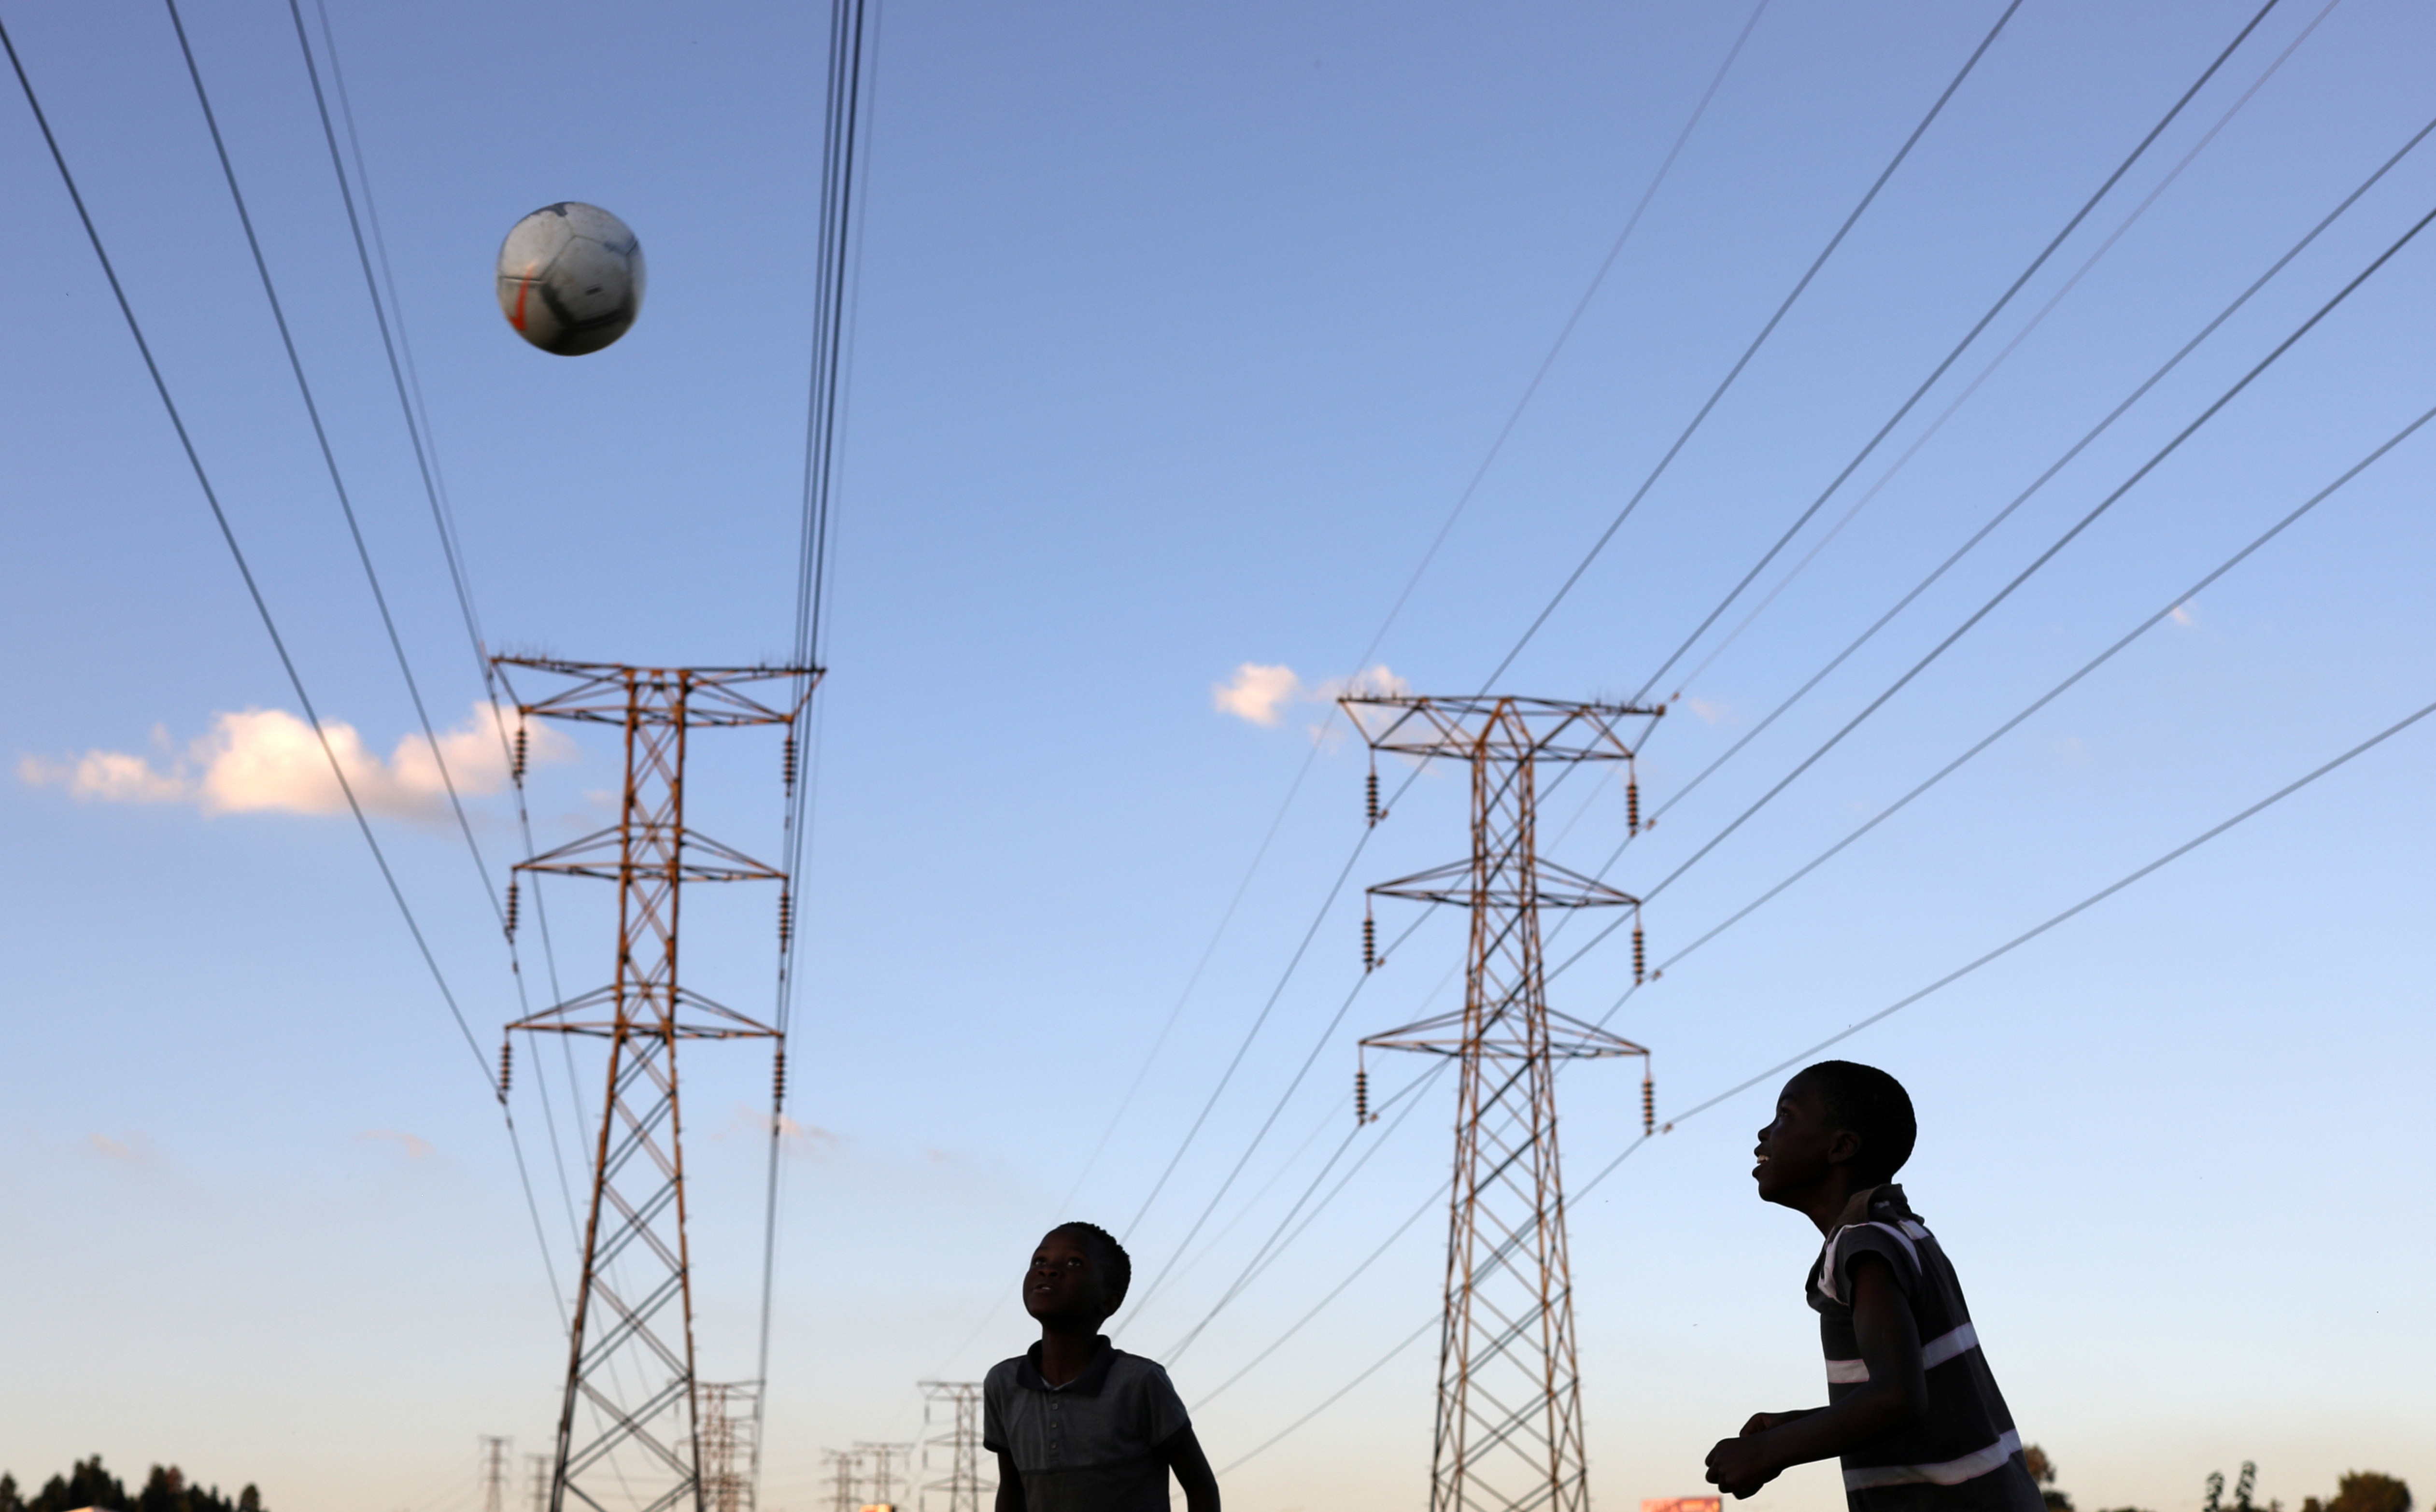 Boys play soccer below electricity pylons in Soweto, South Africa.